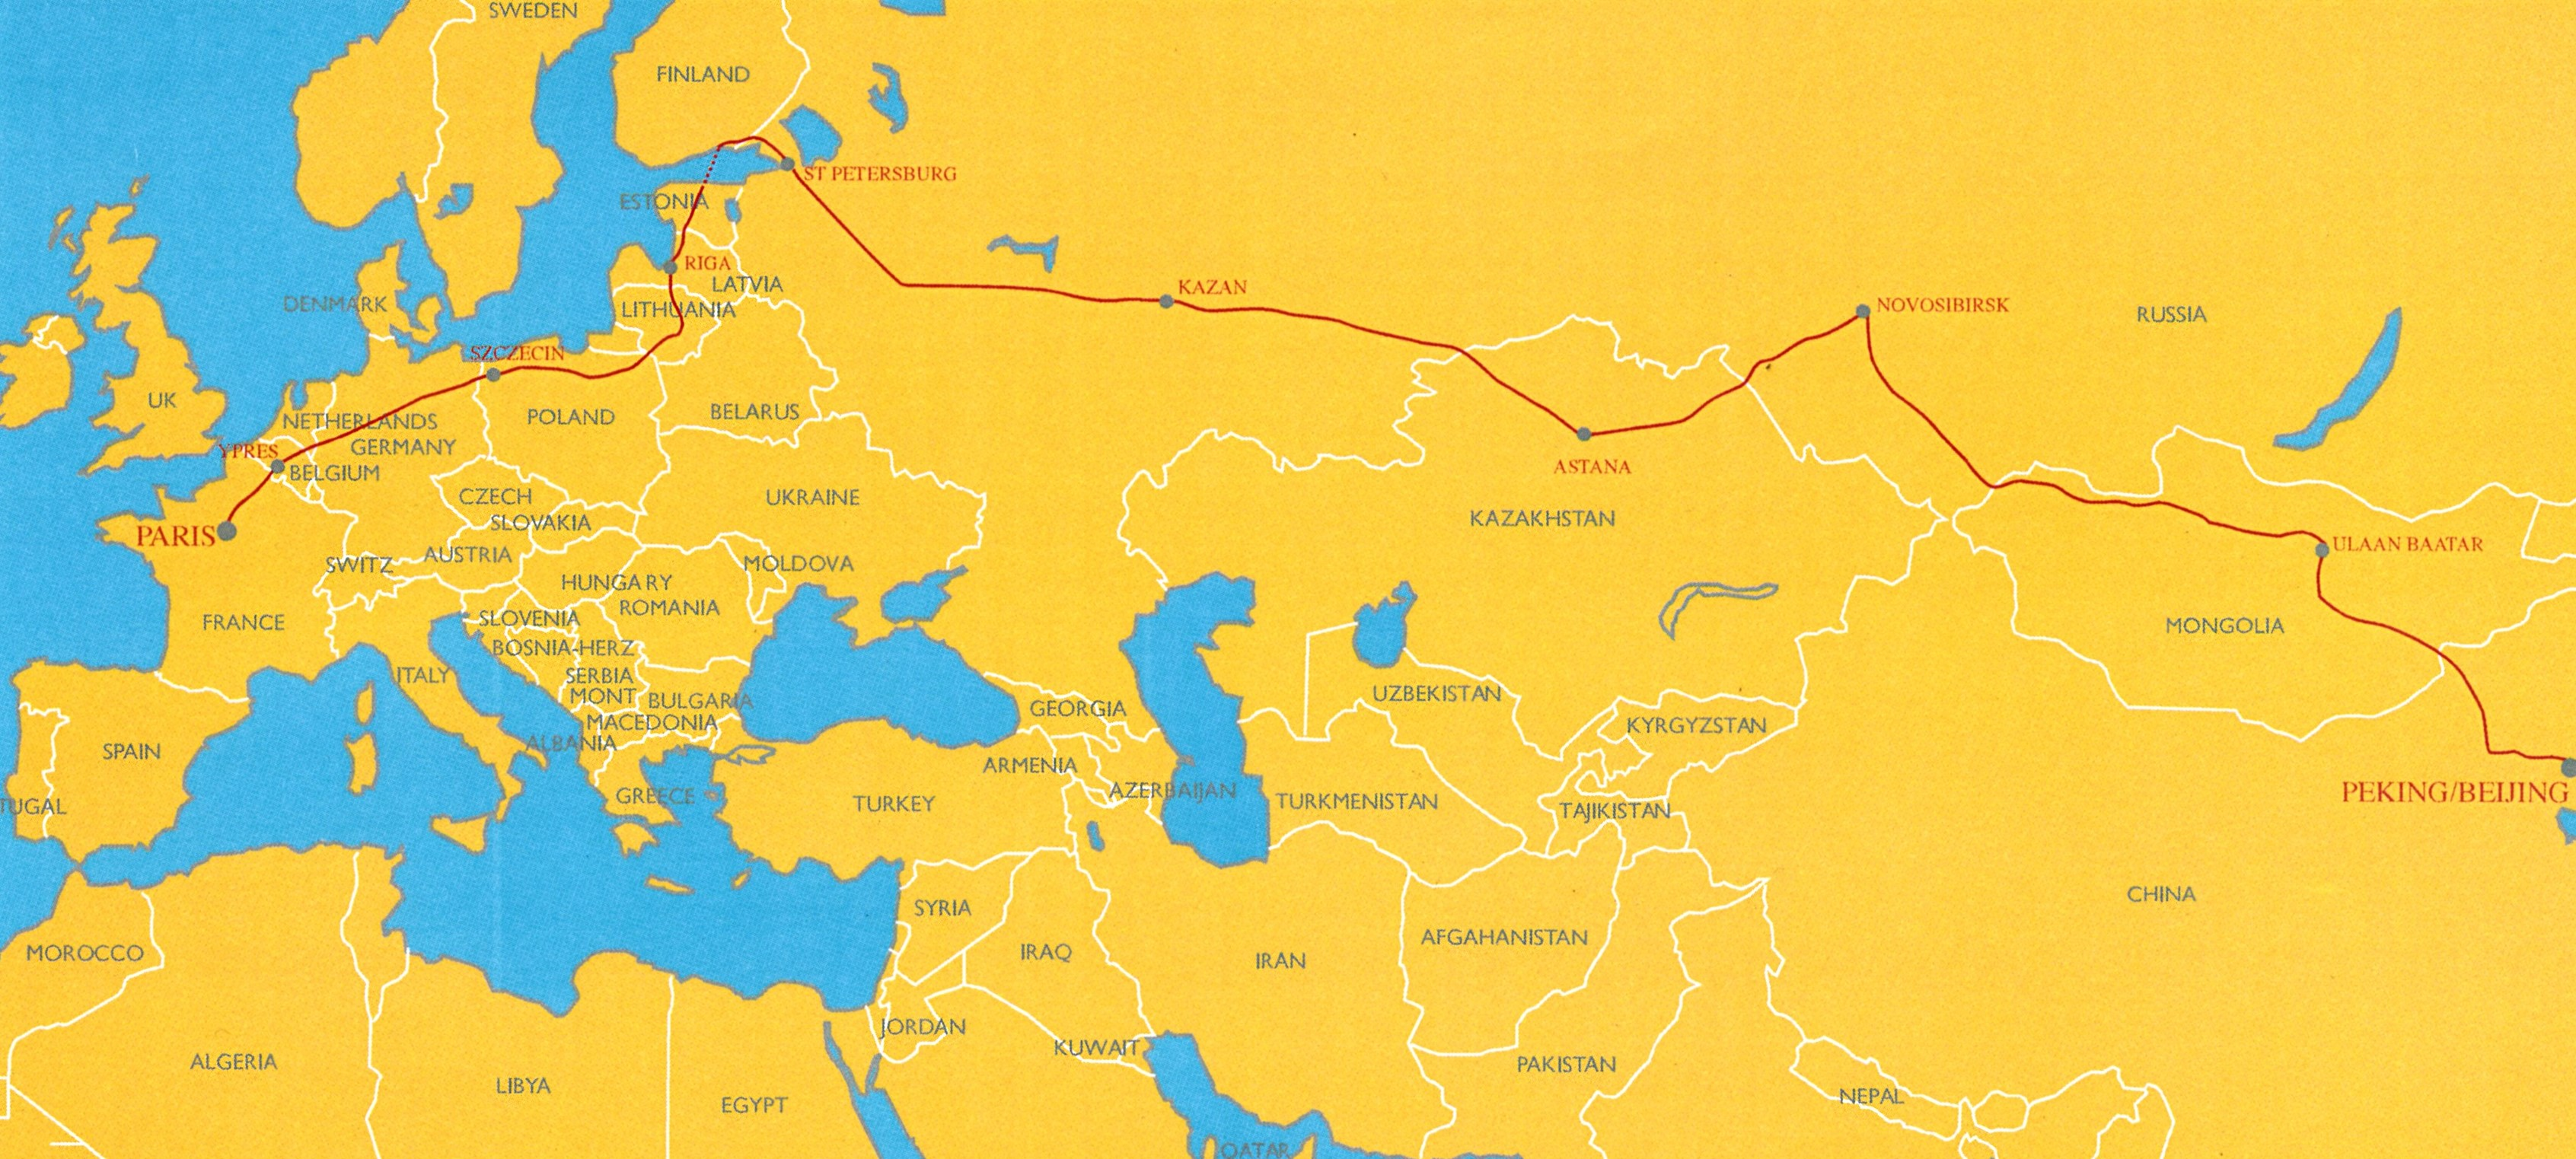 Peking to Paris Route Map